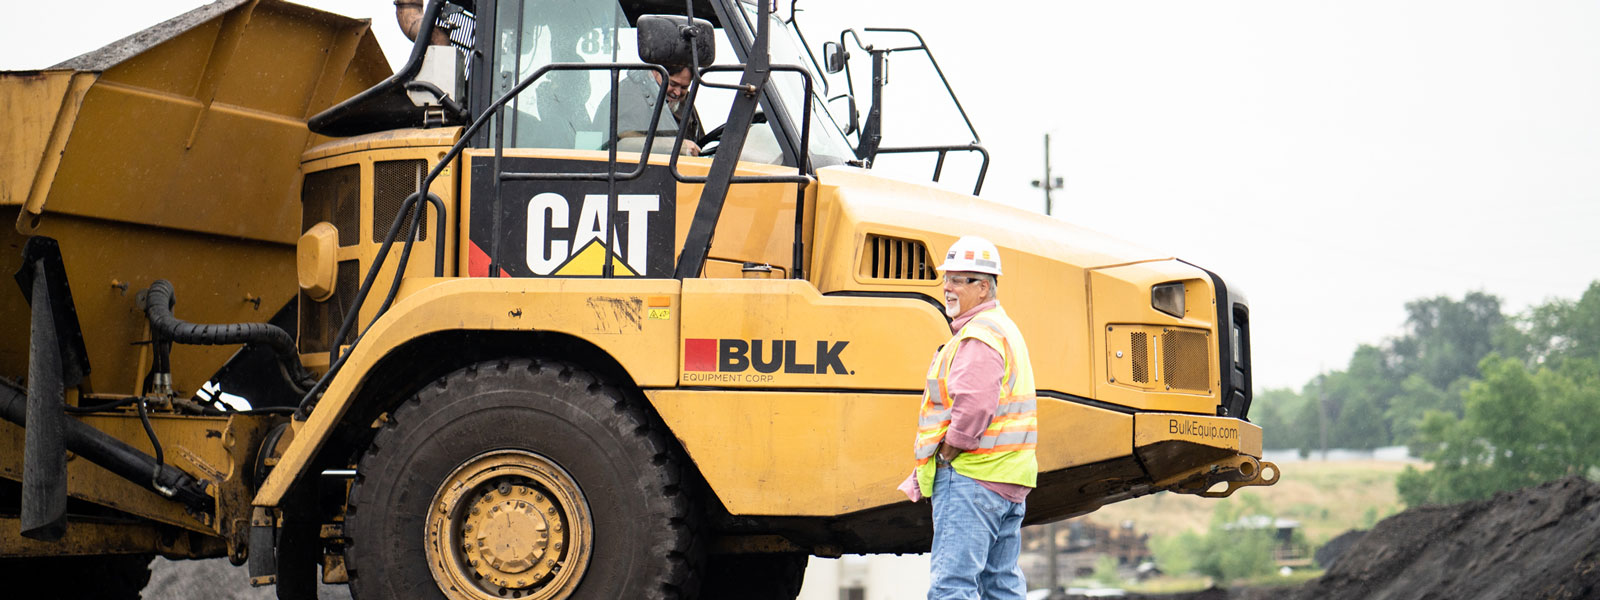 Bulk Equipment Employee Wearing Hard Hat, Neon Vest & Safety Glasses Next To Cat® Heavy Equipment At A Landfill Job Site